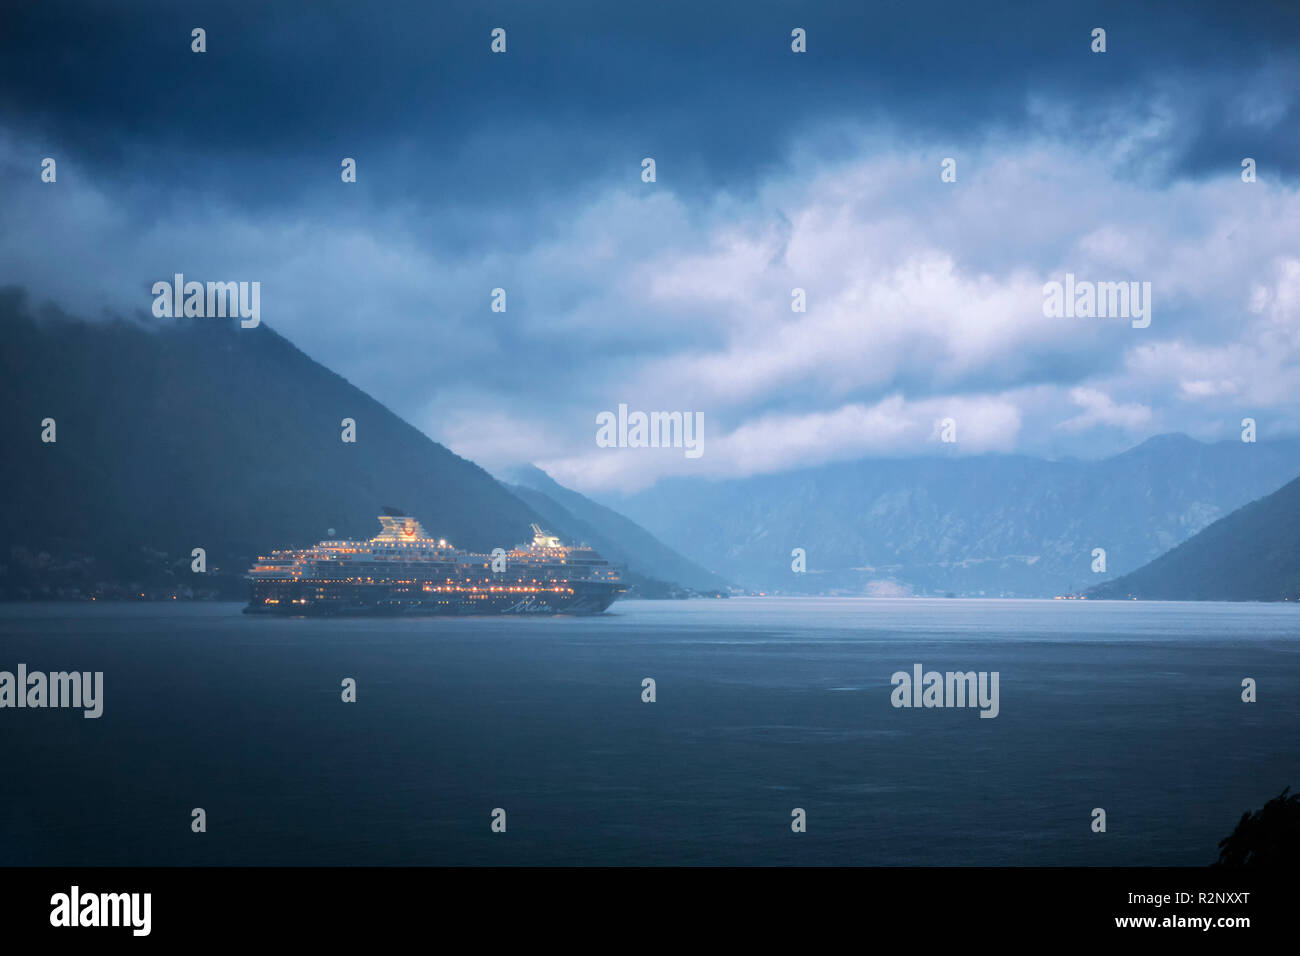 Boka Kotorska (the Bay of Kotor) from the village of Dobrota, Montenegro on a stormy evening: the cruise ship 'Mein Schiff 1' departs for the open sea - Stock Image